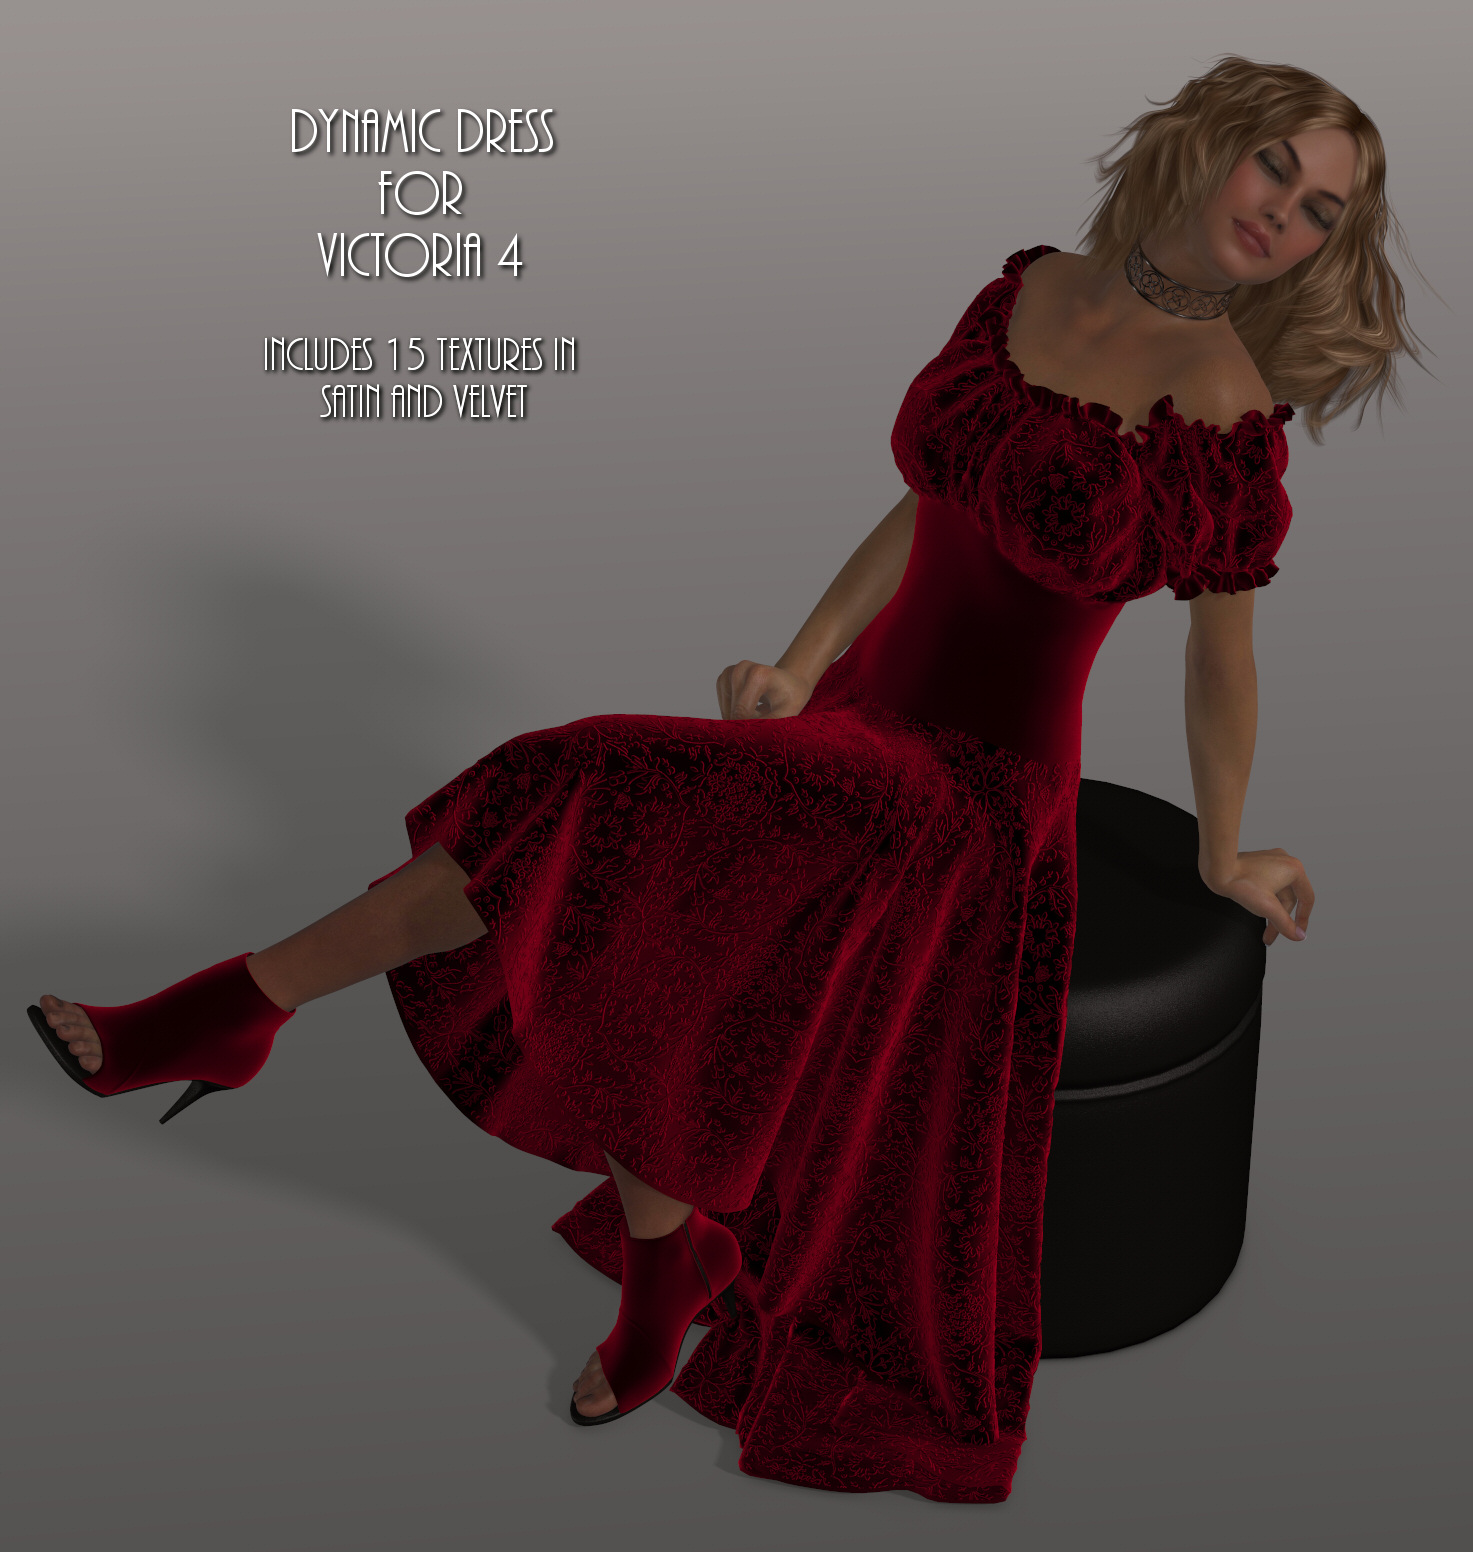 Dynamics 12 - Wench Dress for Victoria 4 by Lully